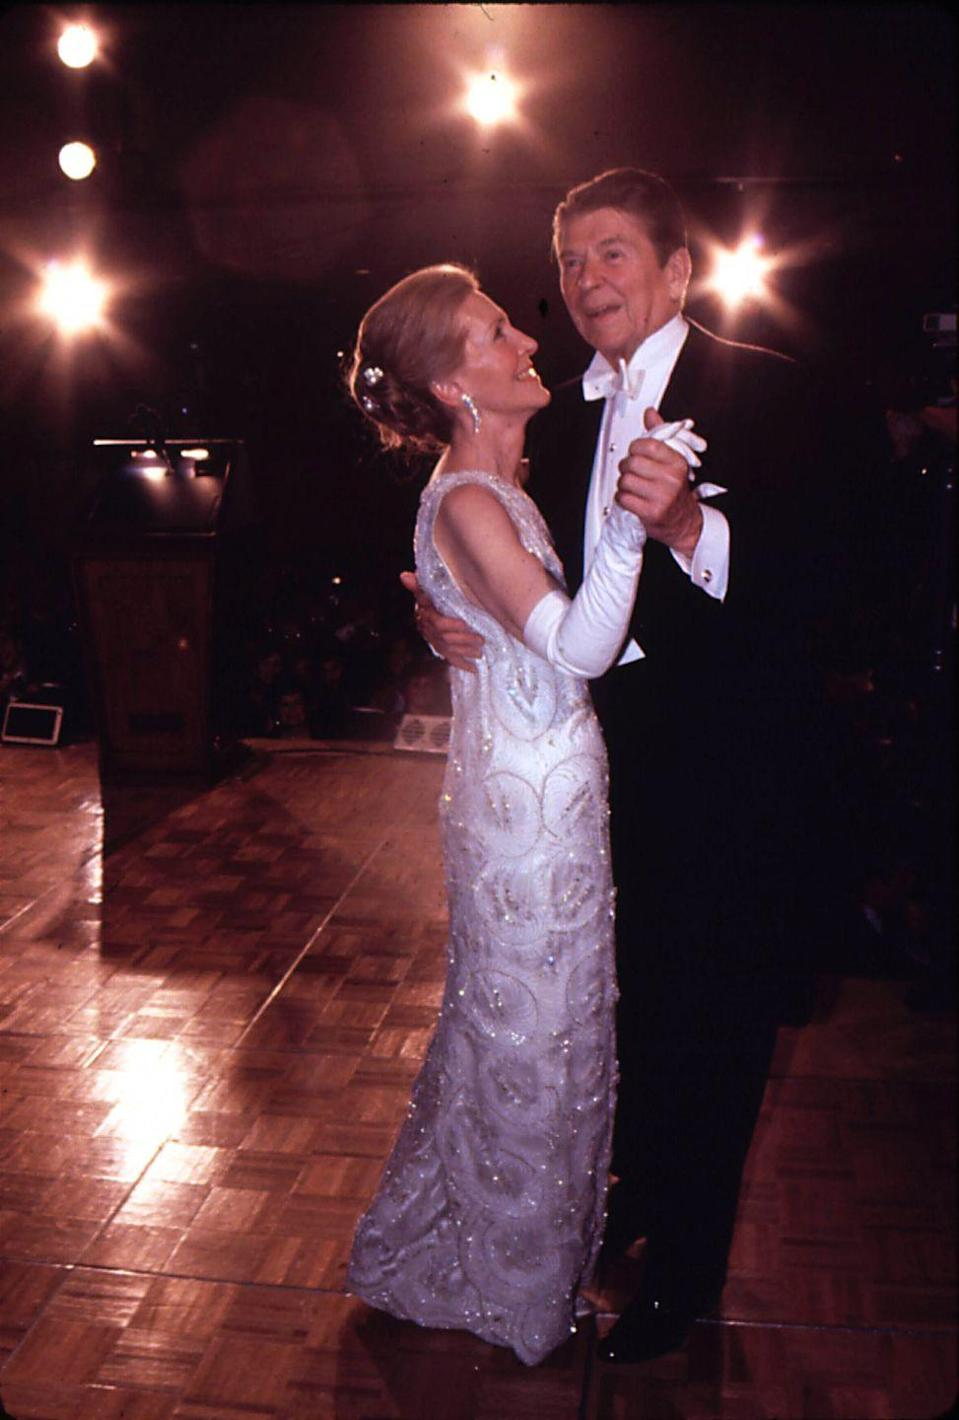 <p>Newly elected President Ronald Reagan danced with First Lady Nancy at the Inaugural Ball in Washington, D.C. </p>